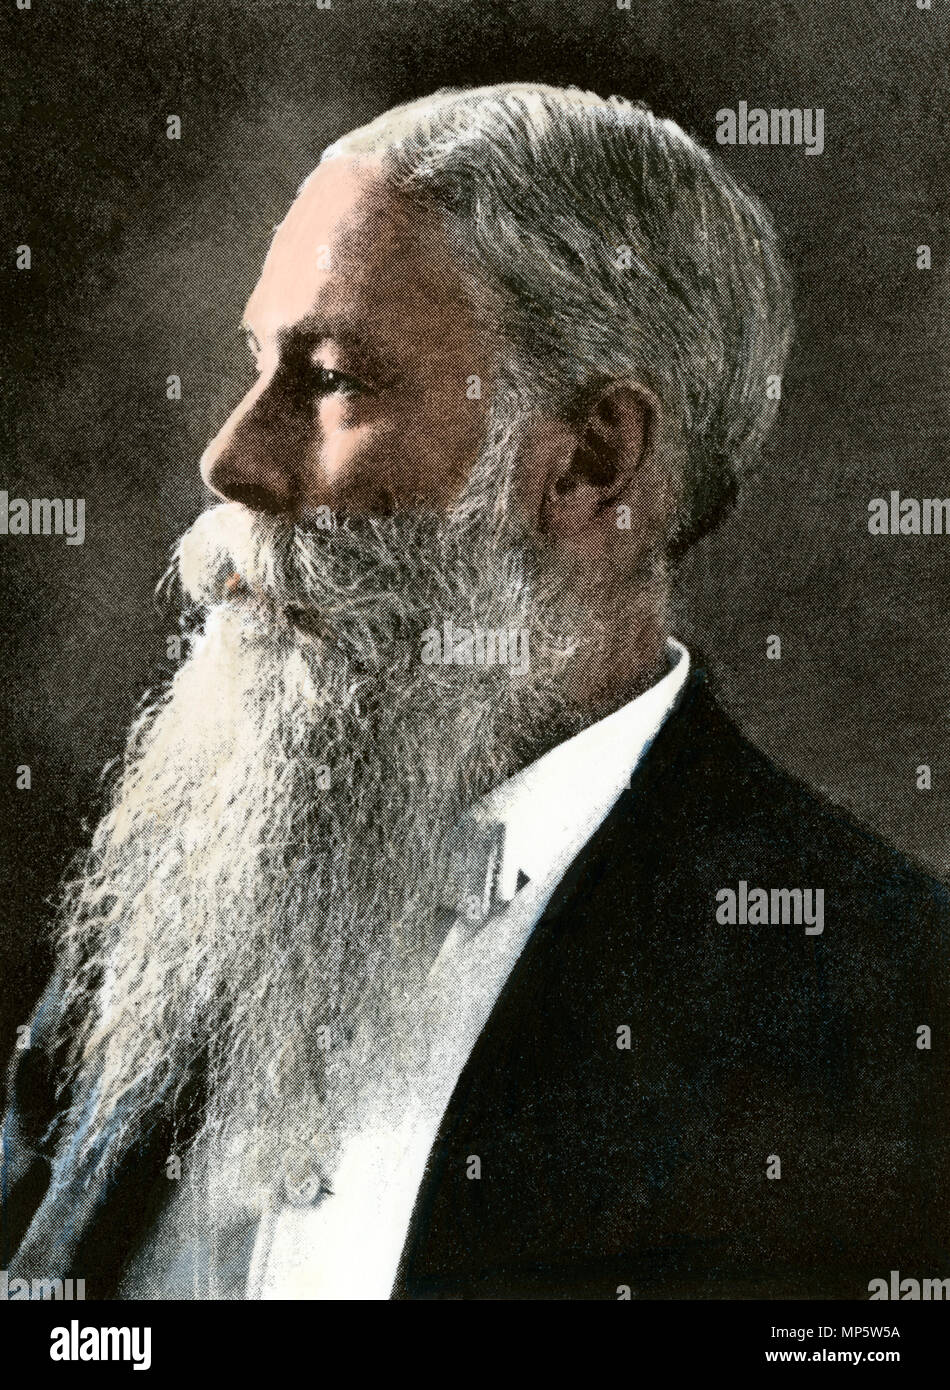 Sanford B. Dole, Territorial Governor of Hawaii, 1898. Hand-colored halftone of a photograph - Stock Image